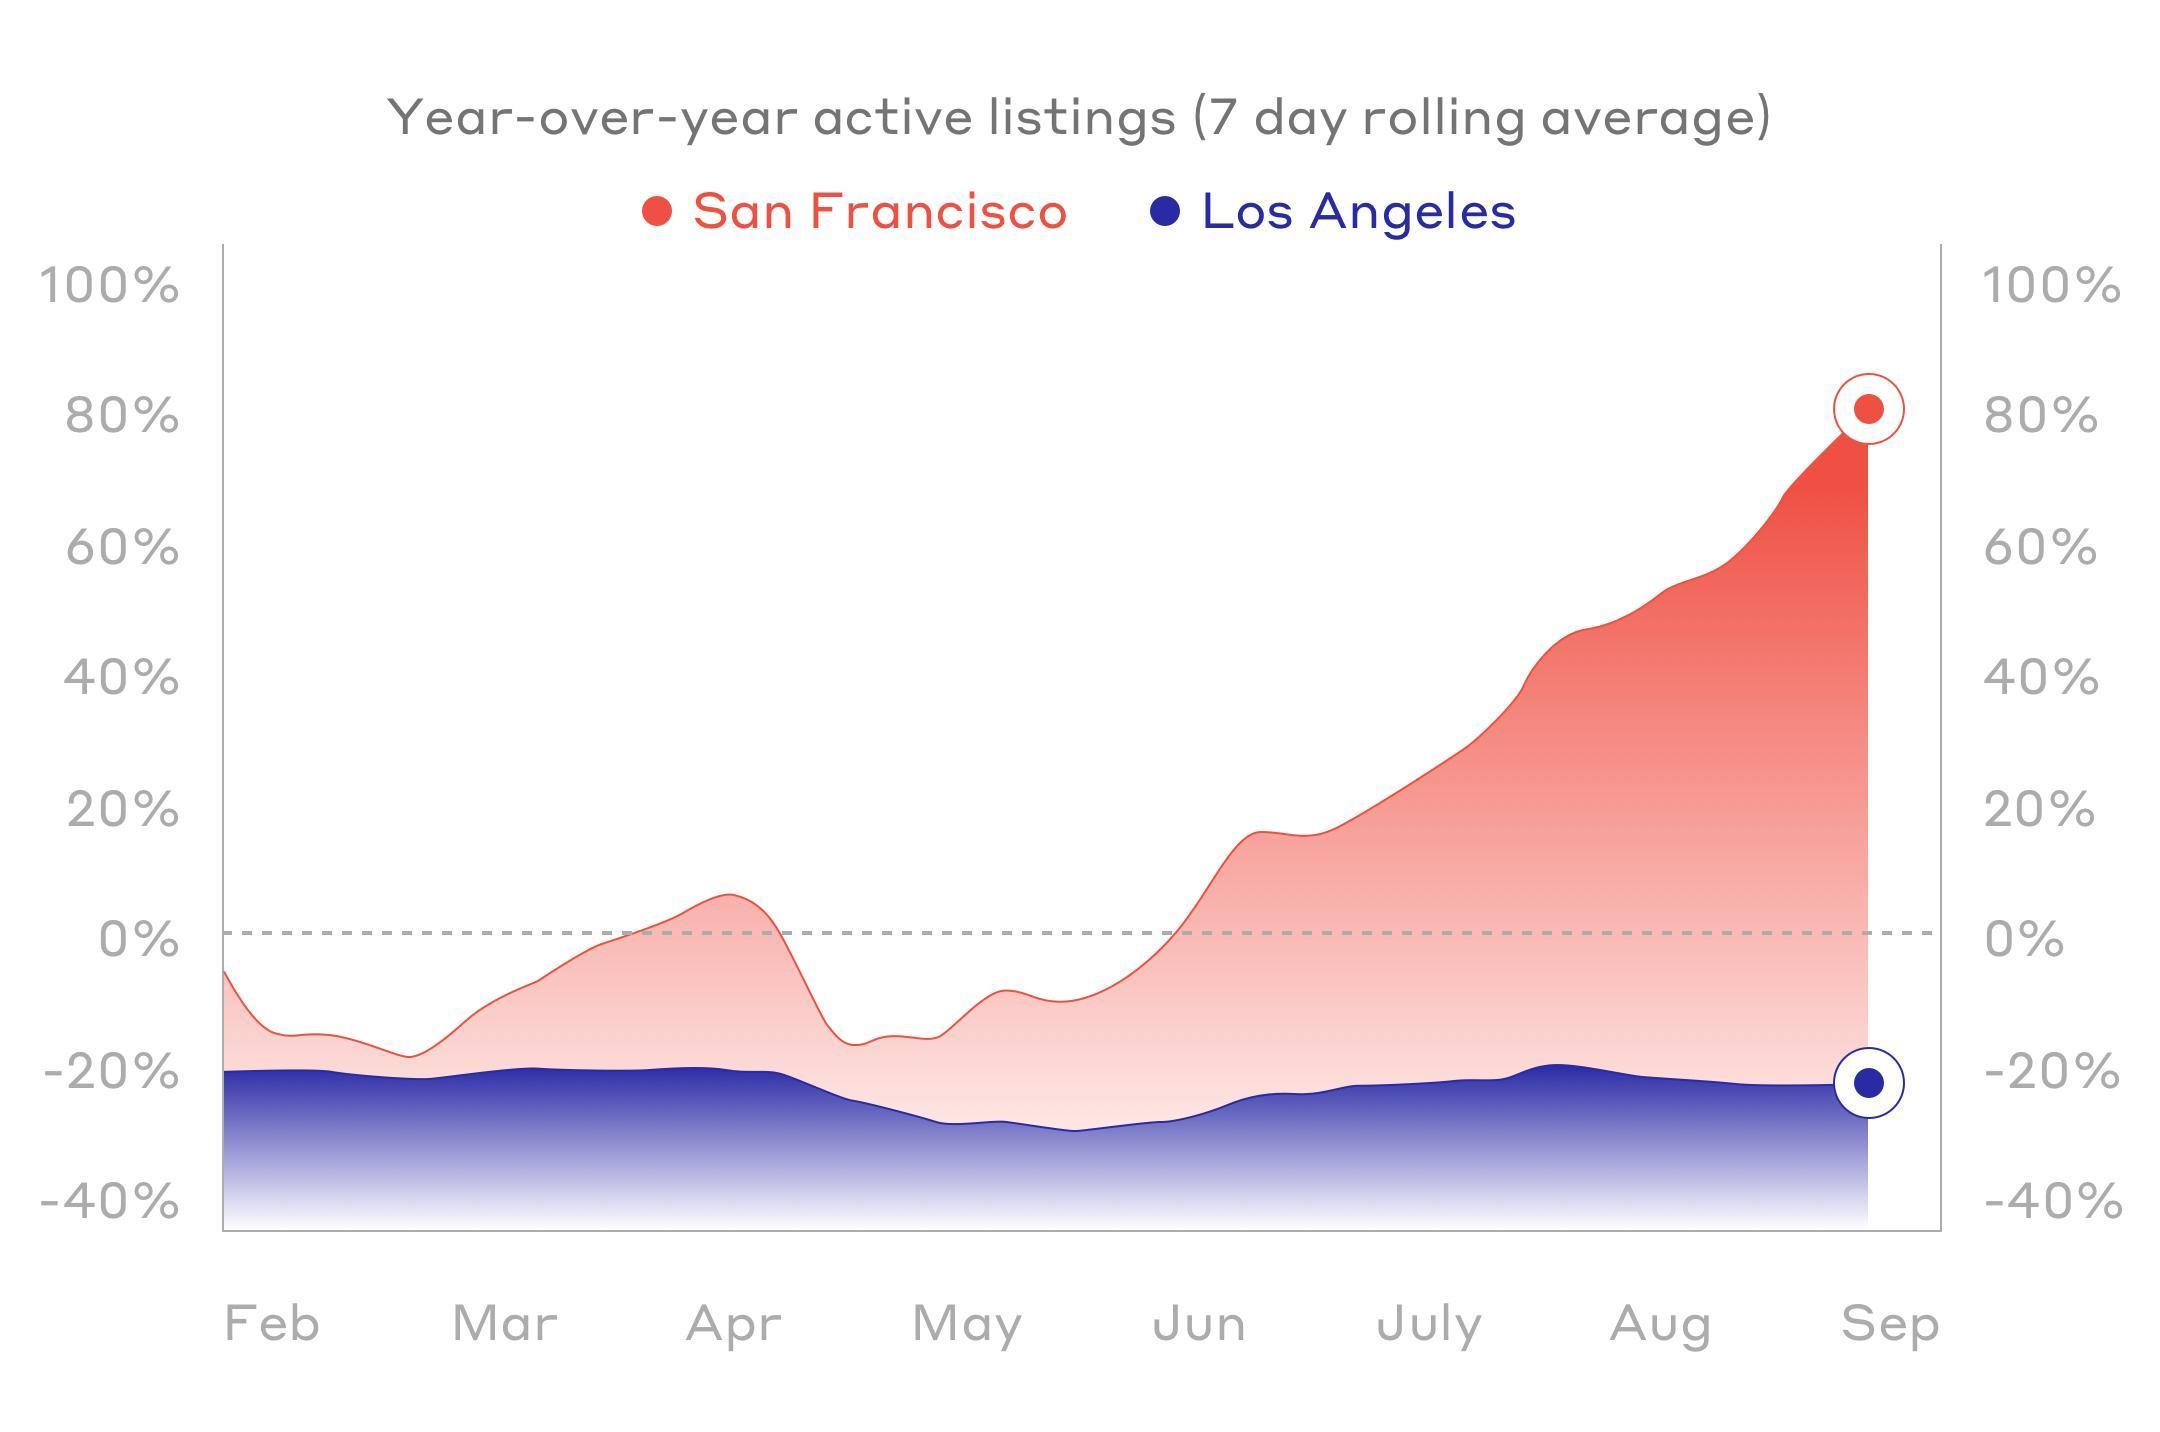 Year-over-year active listings (7 day rolling average)